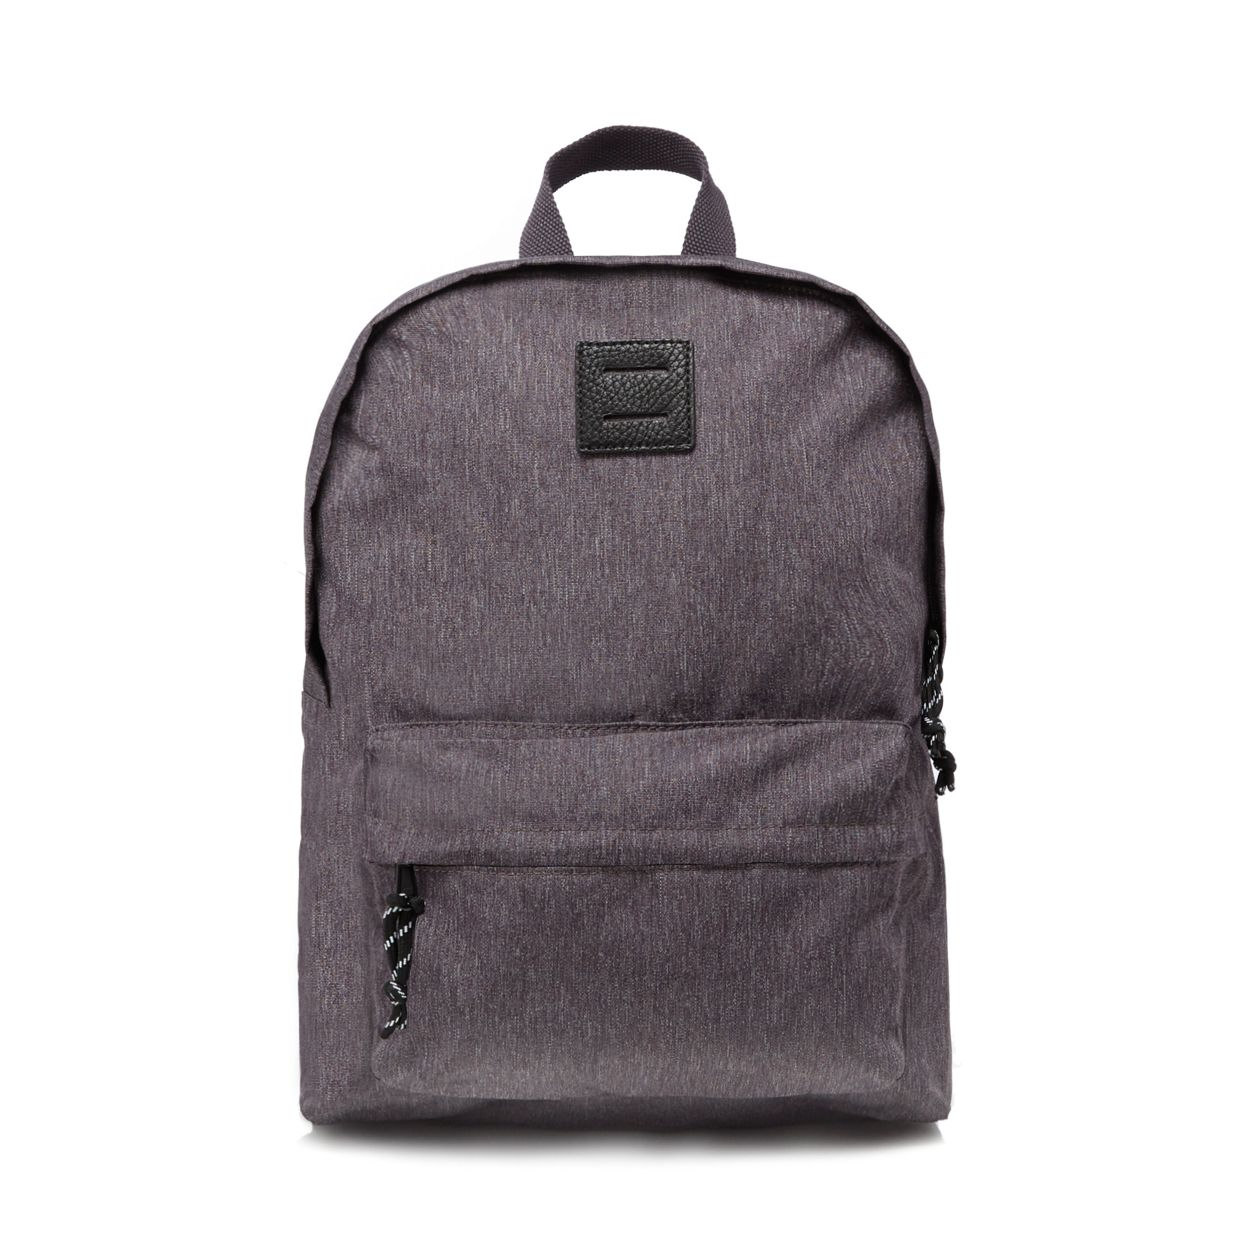 Red Herring Grey textured backpack